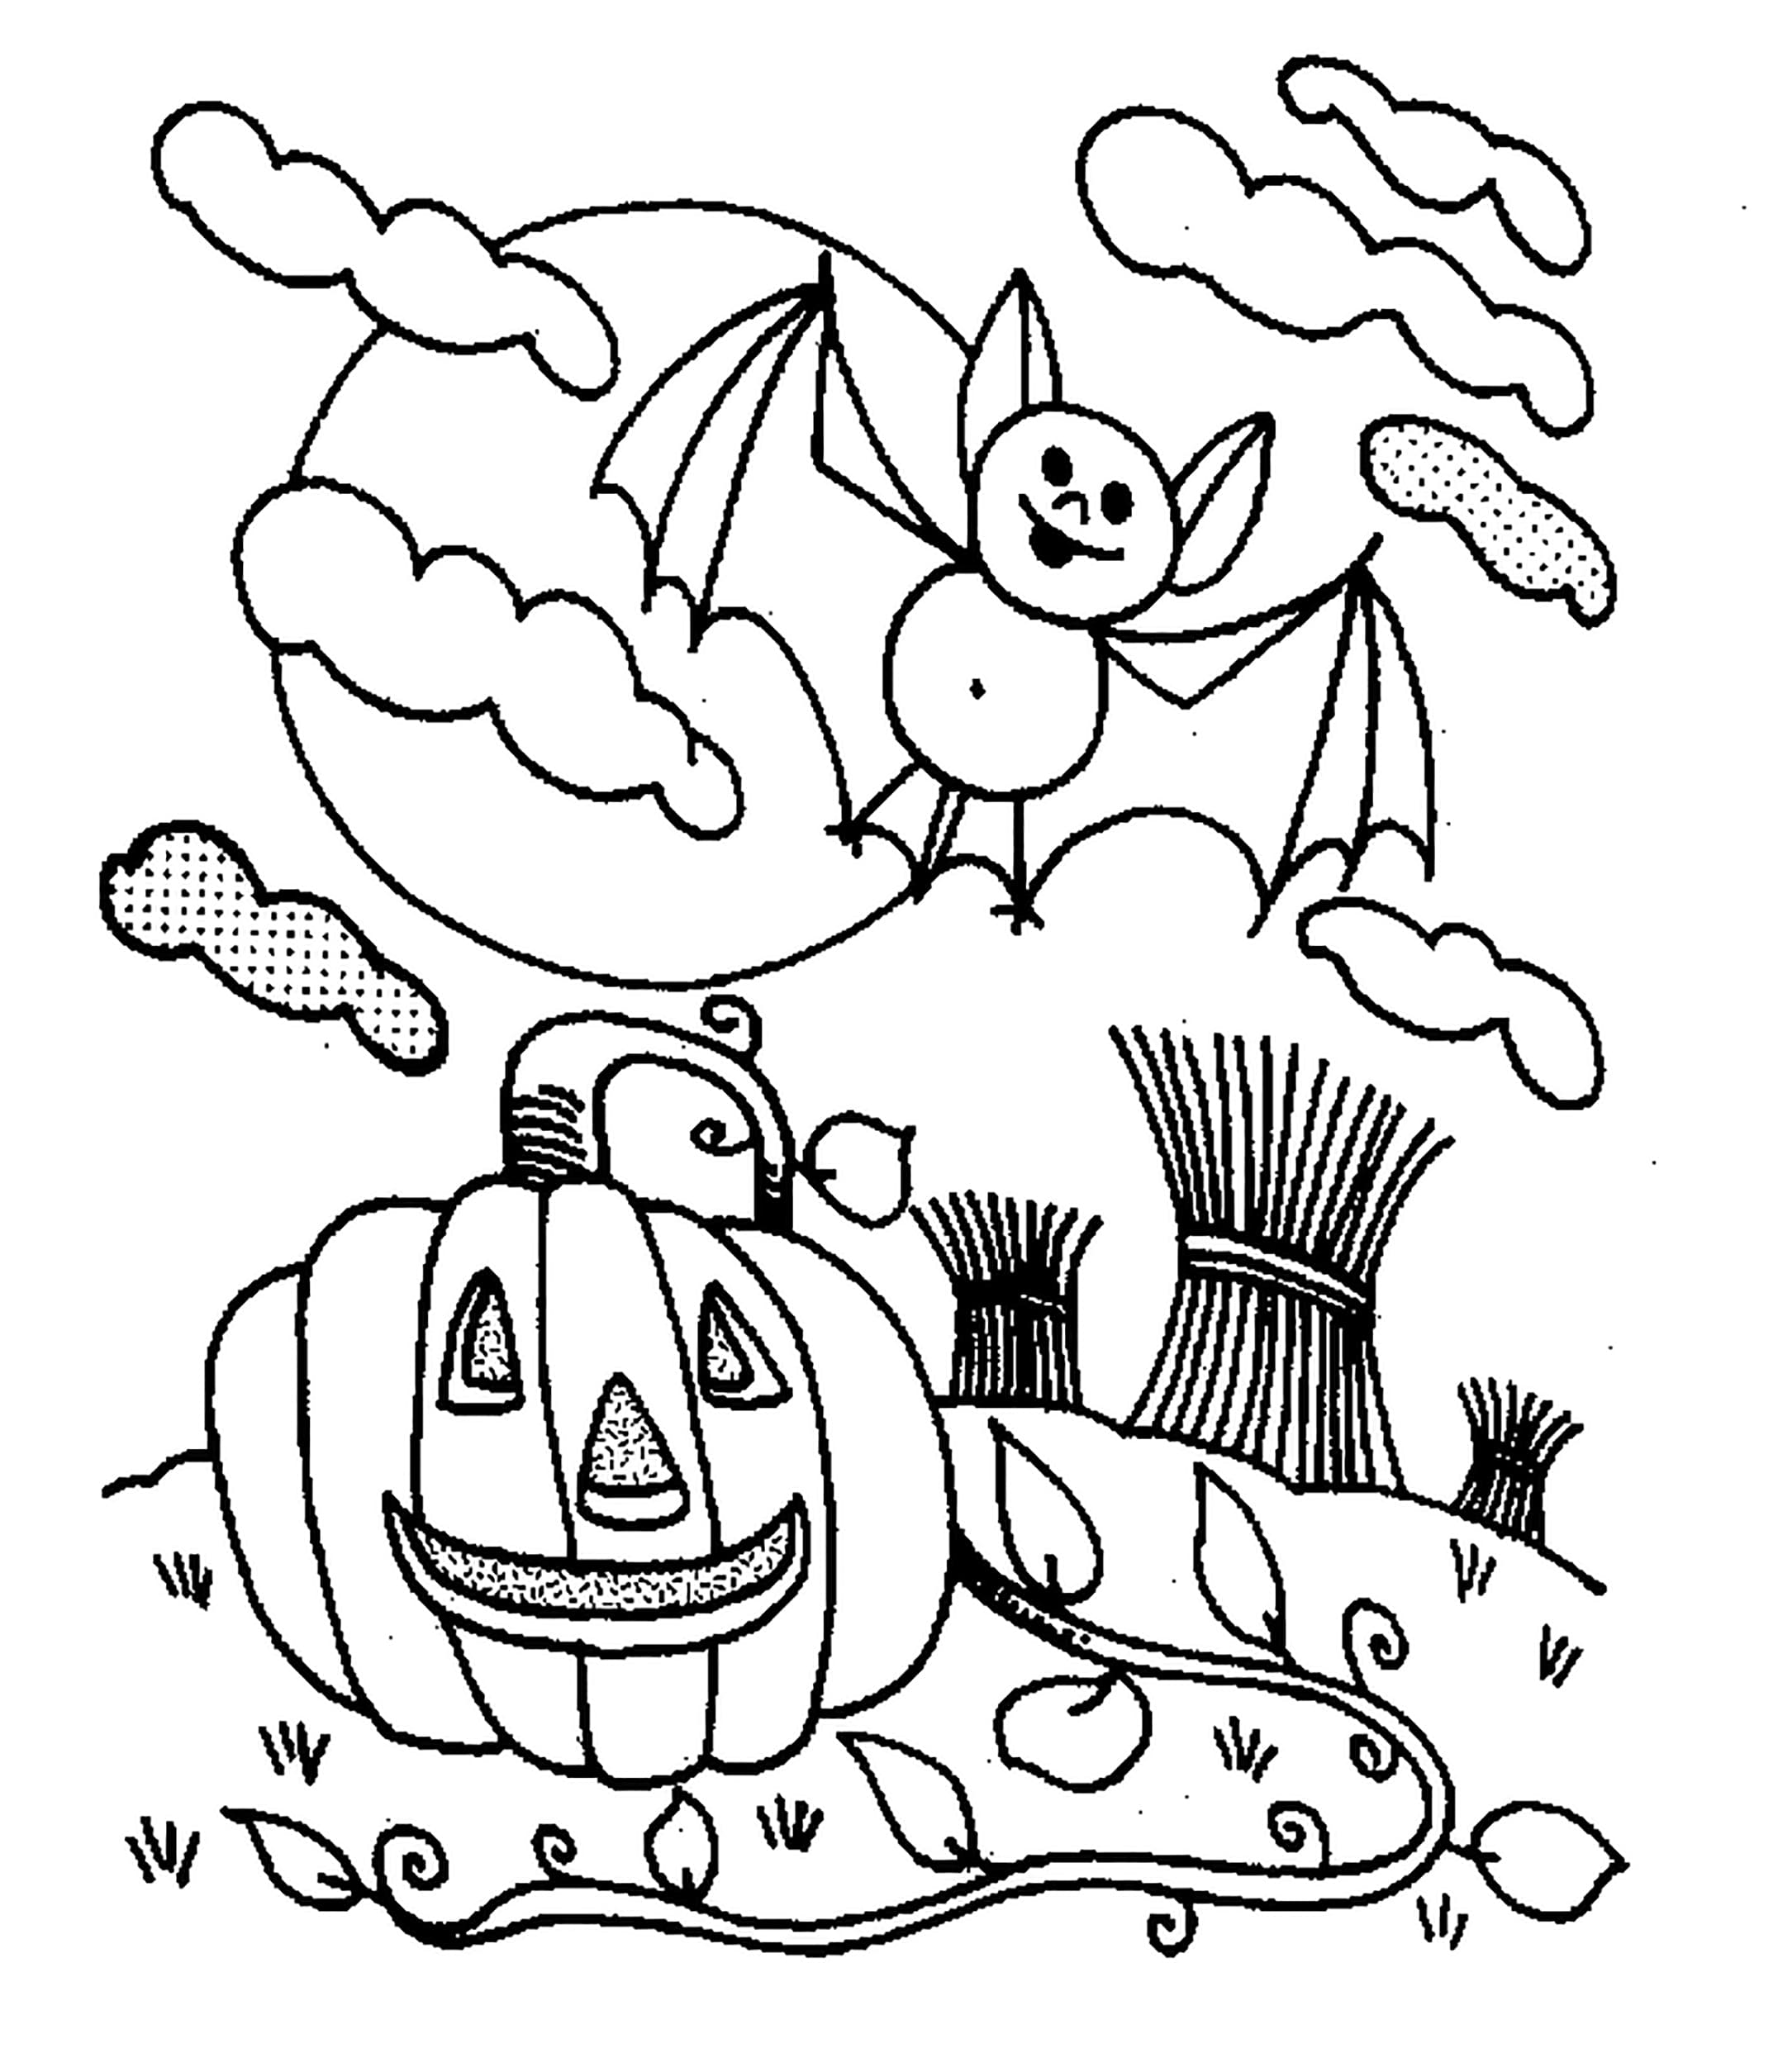 coloring sheets halloween halloween coloring pages for kids 100 pictures print halloween sheets coloring